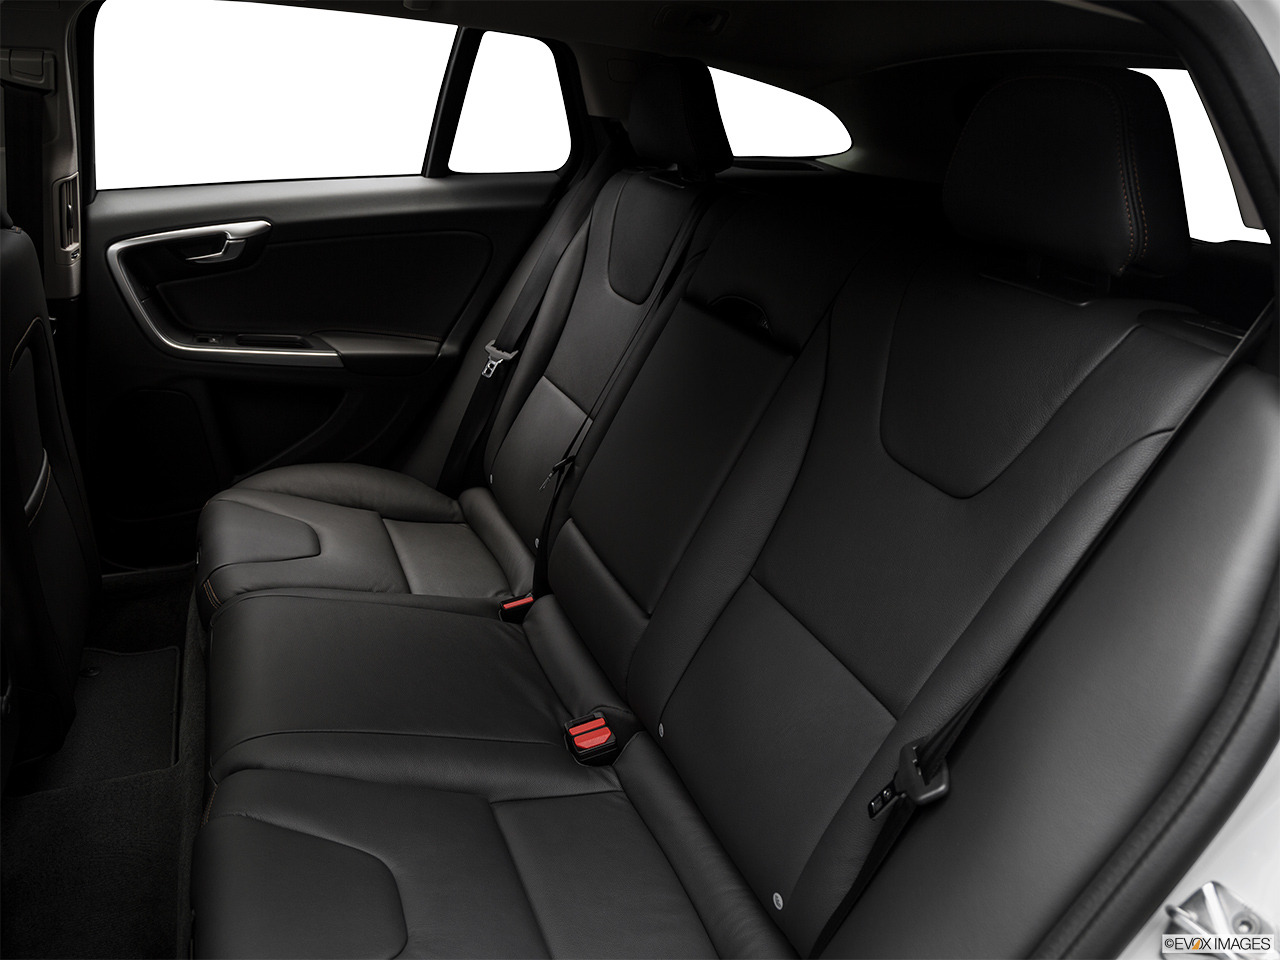 2018 Volvo V60 Cross Country T5 AWD Rear seats from Drivers Side.